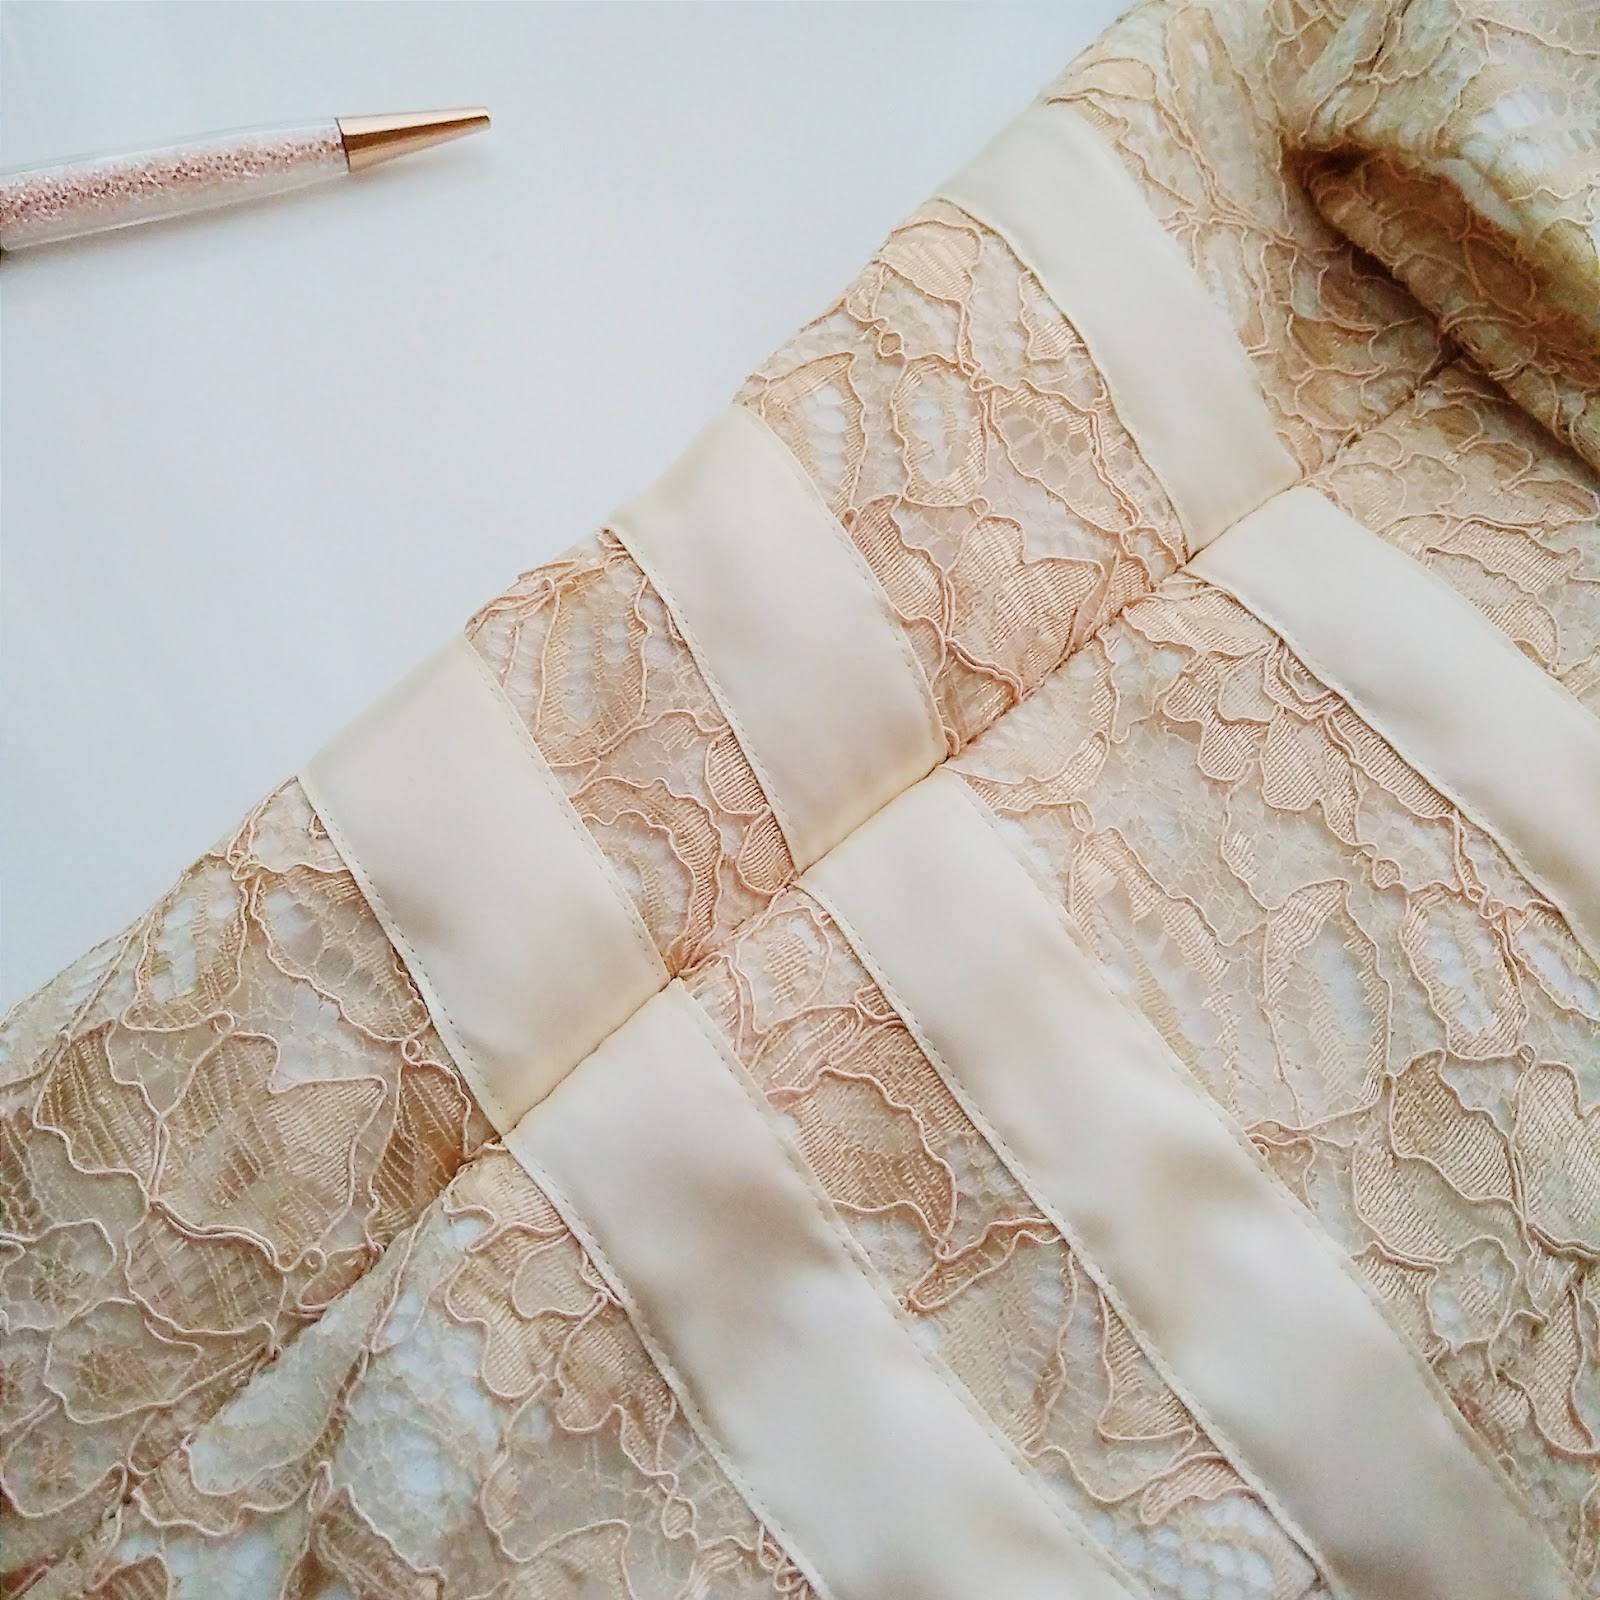 Sewing with lace